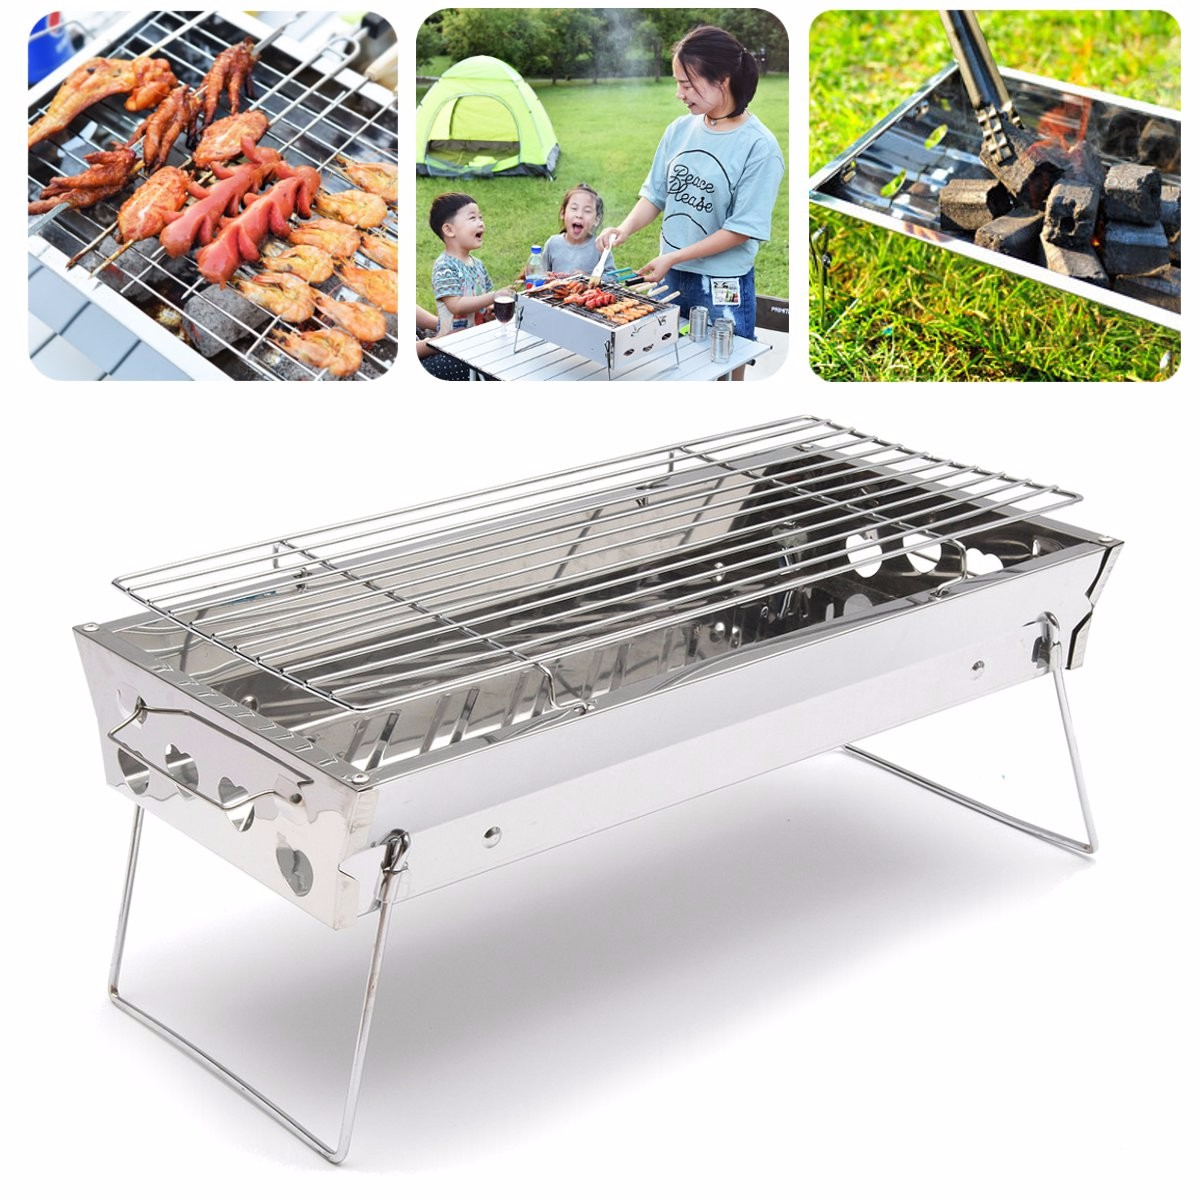 Backpacks hydration packs stainless steel portable outdooors camping table top barbecue - Grill for bbq stainless steel ...